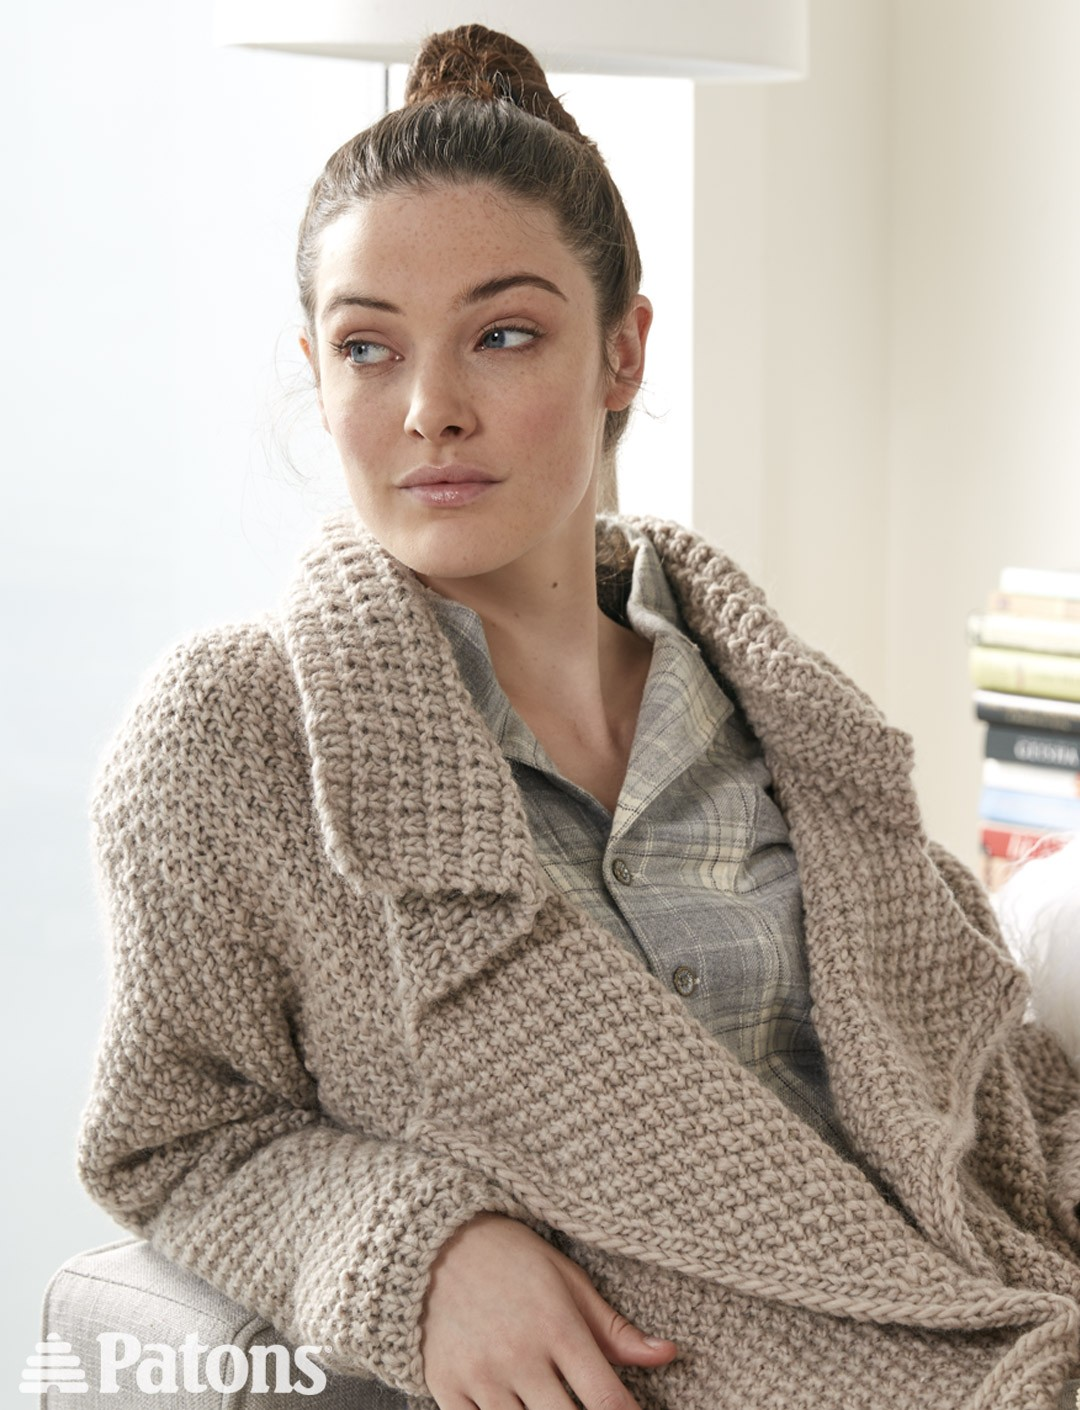 Amazing Knitting Patterns : Patons Lapel Cardigan, Knit Pattern Yarnspirations